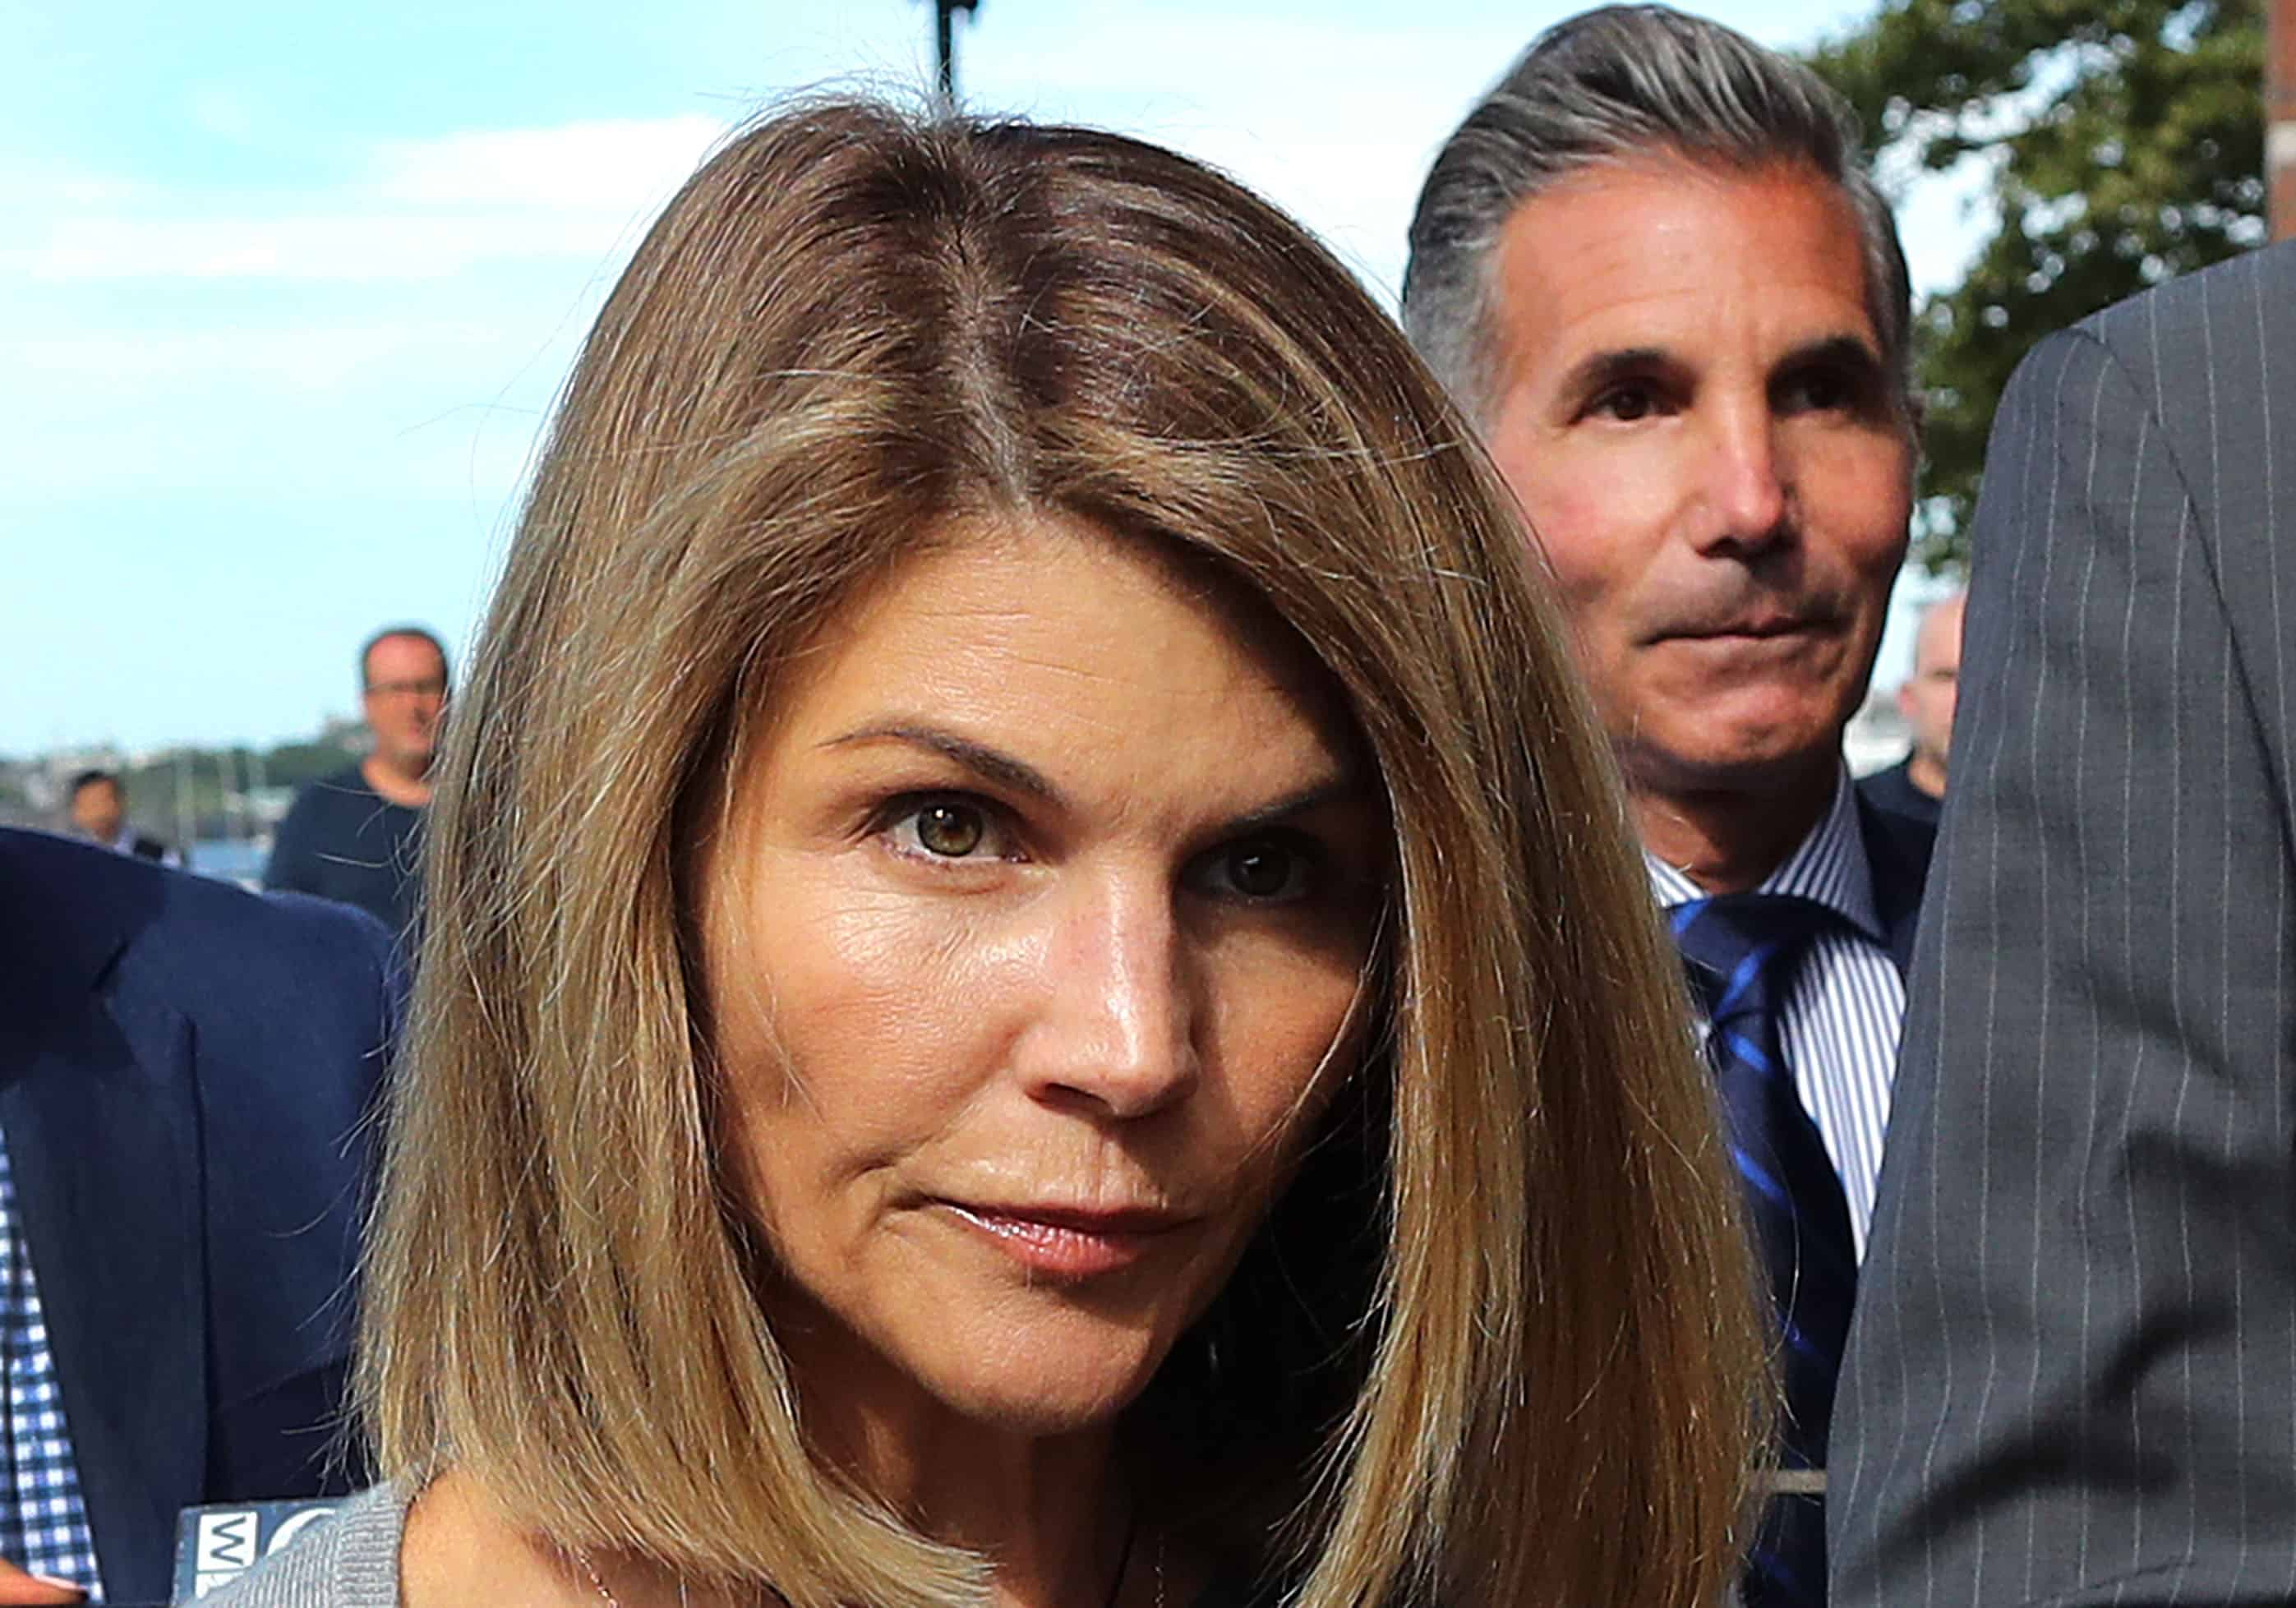 Lori Loughlin and her husband Mossimo Giannulli have agreed to plead guilty in the college admission scandal which involved their daughters admission to USC.